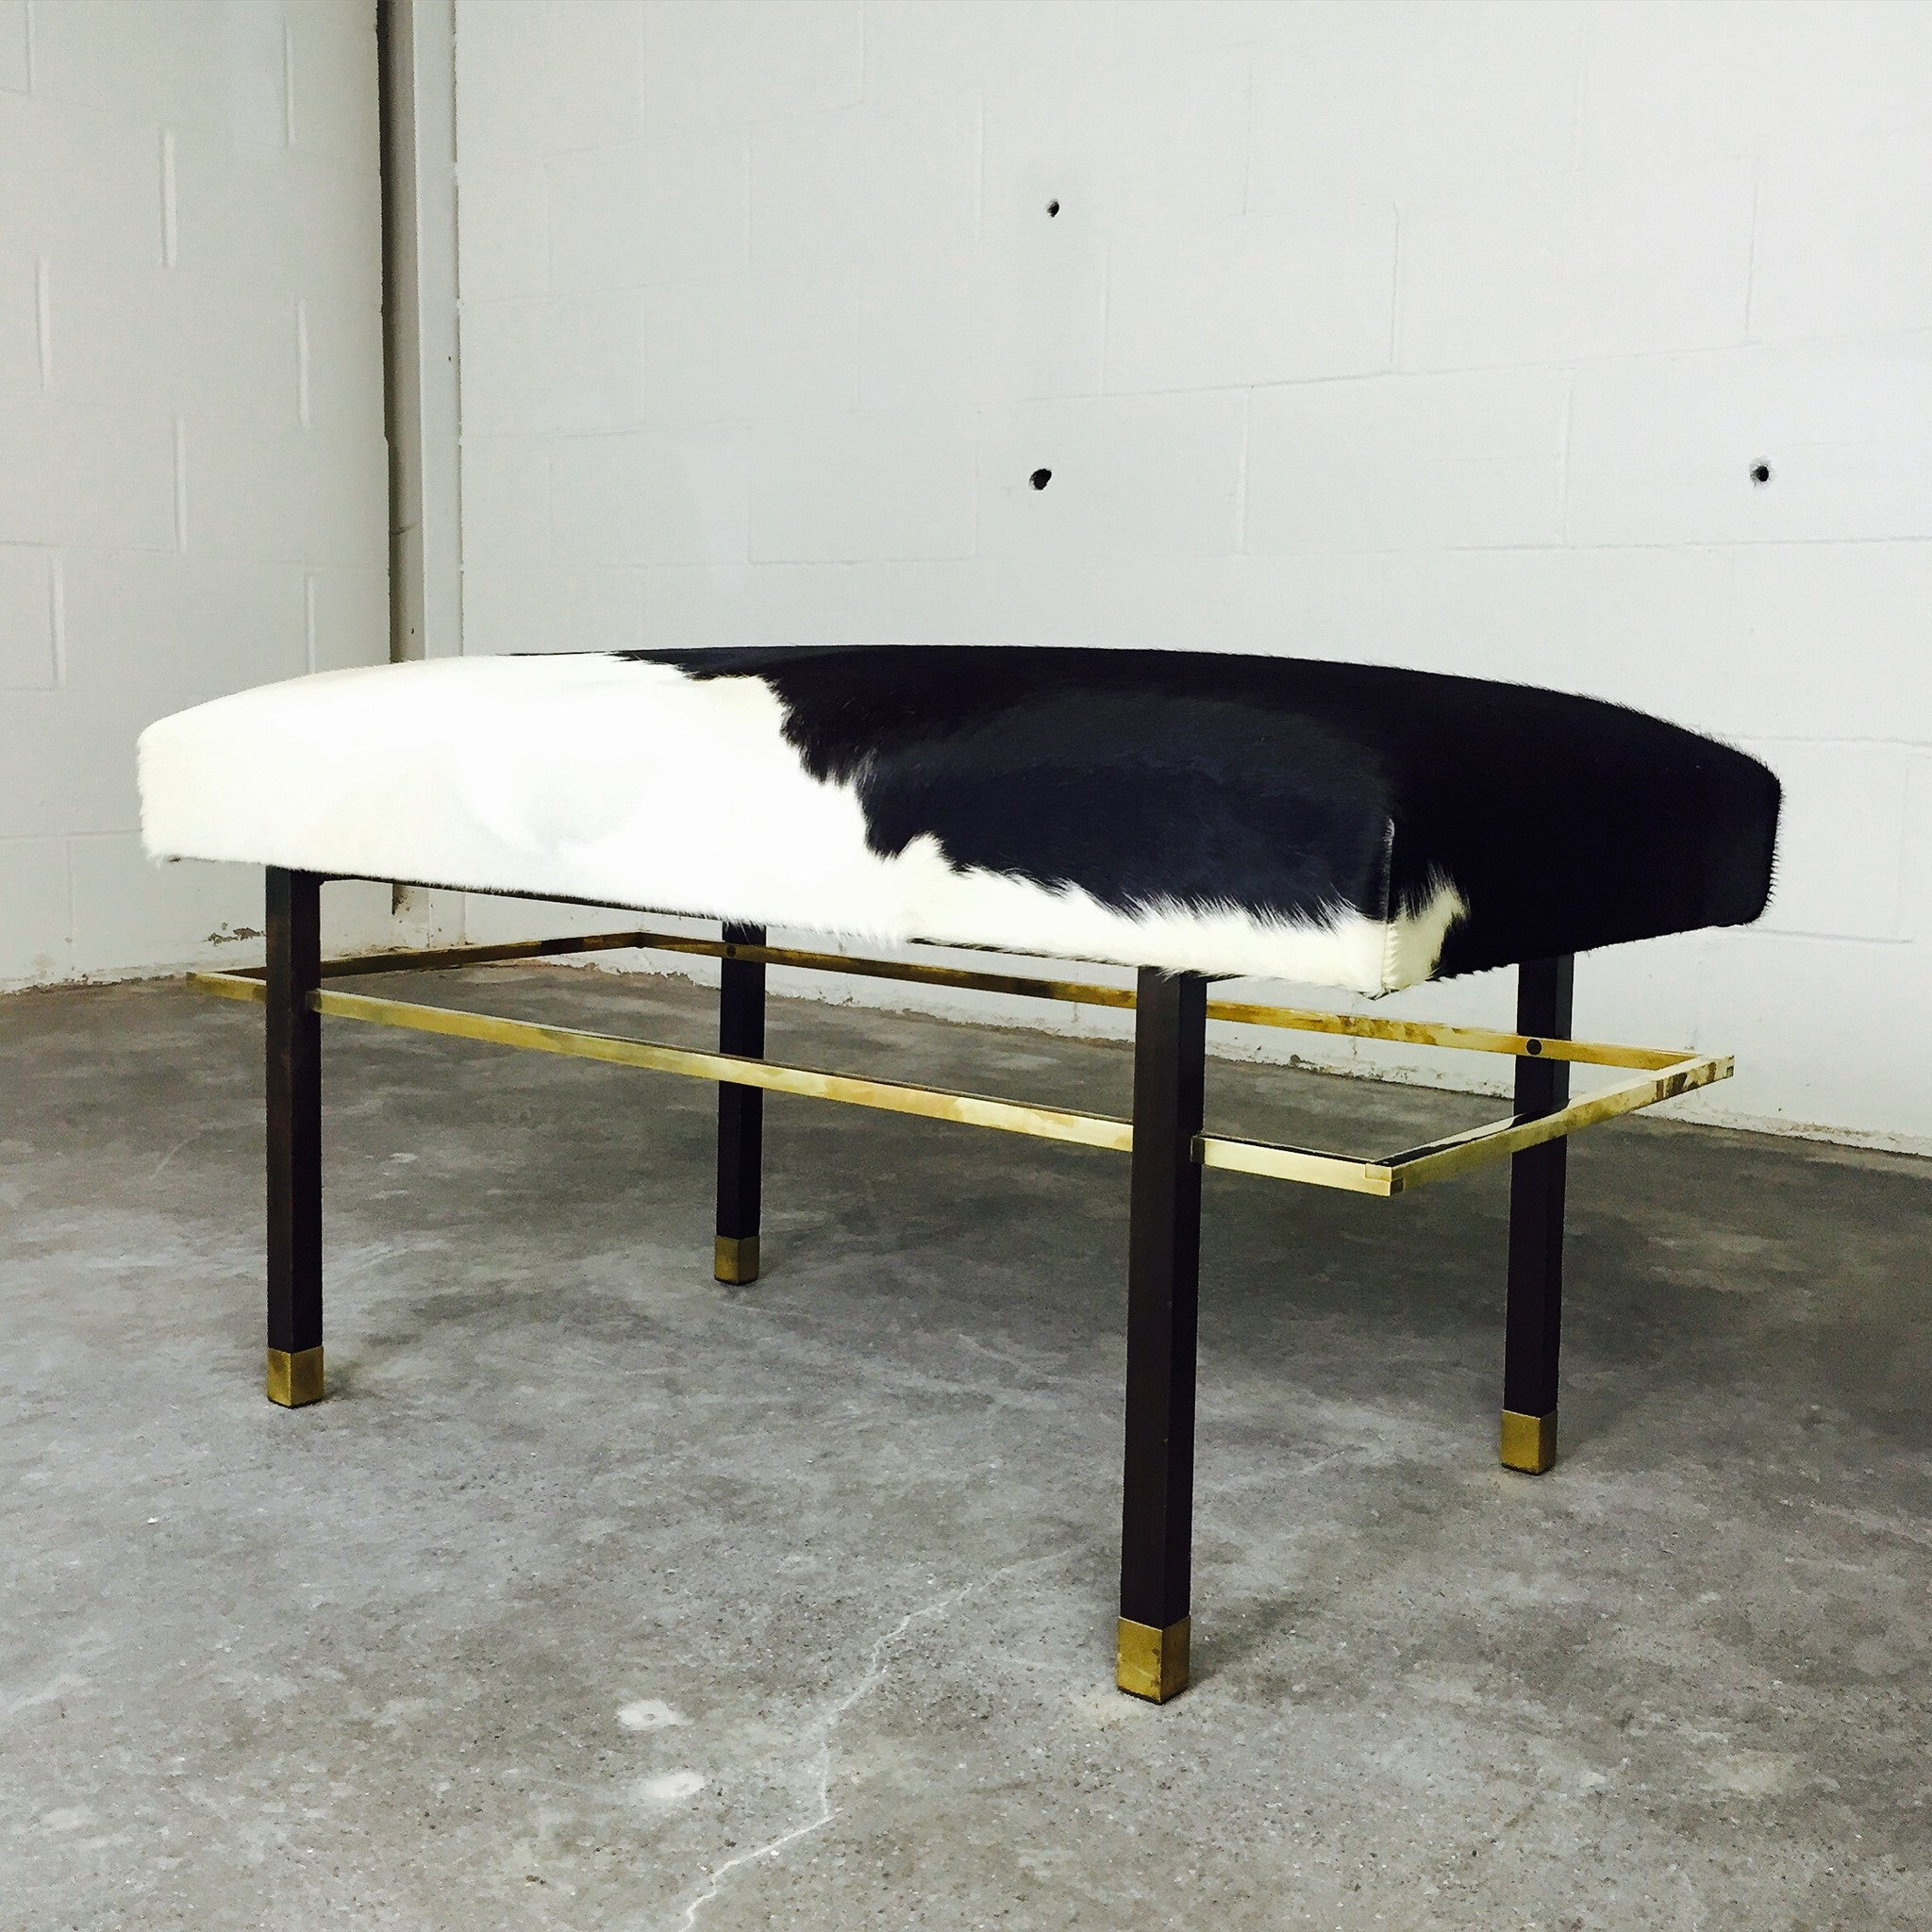 Mahogany and Brass Bench in Brazilian Cowhide - FORSYTH